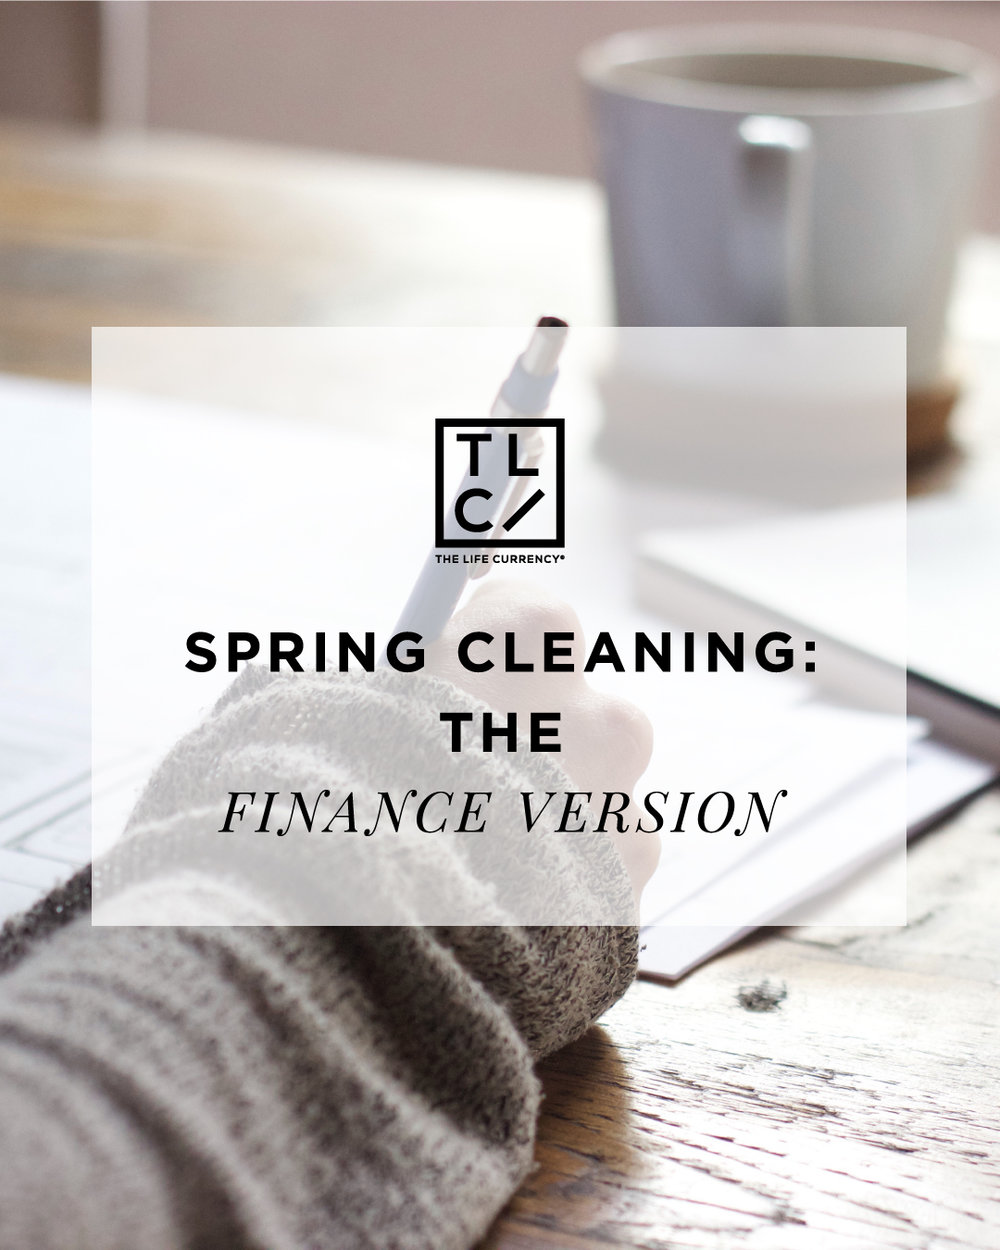 Spring Cleaning: The Finance Version